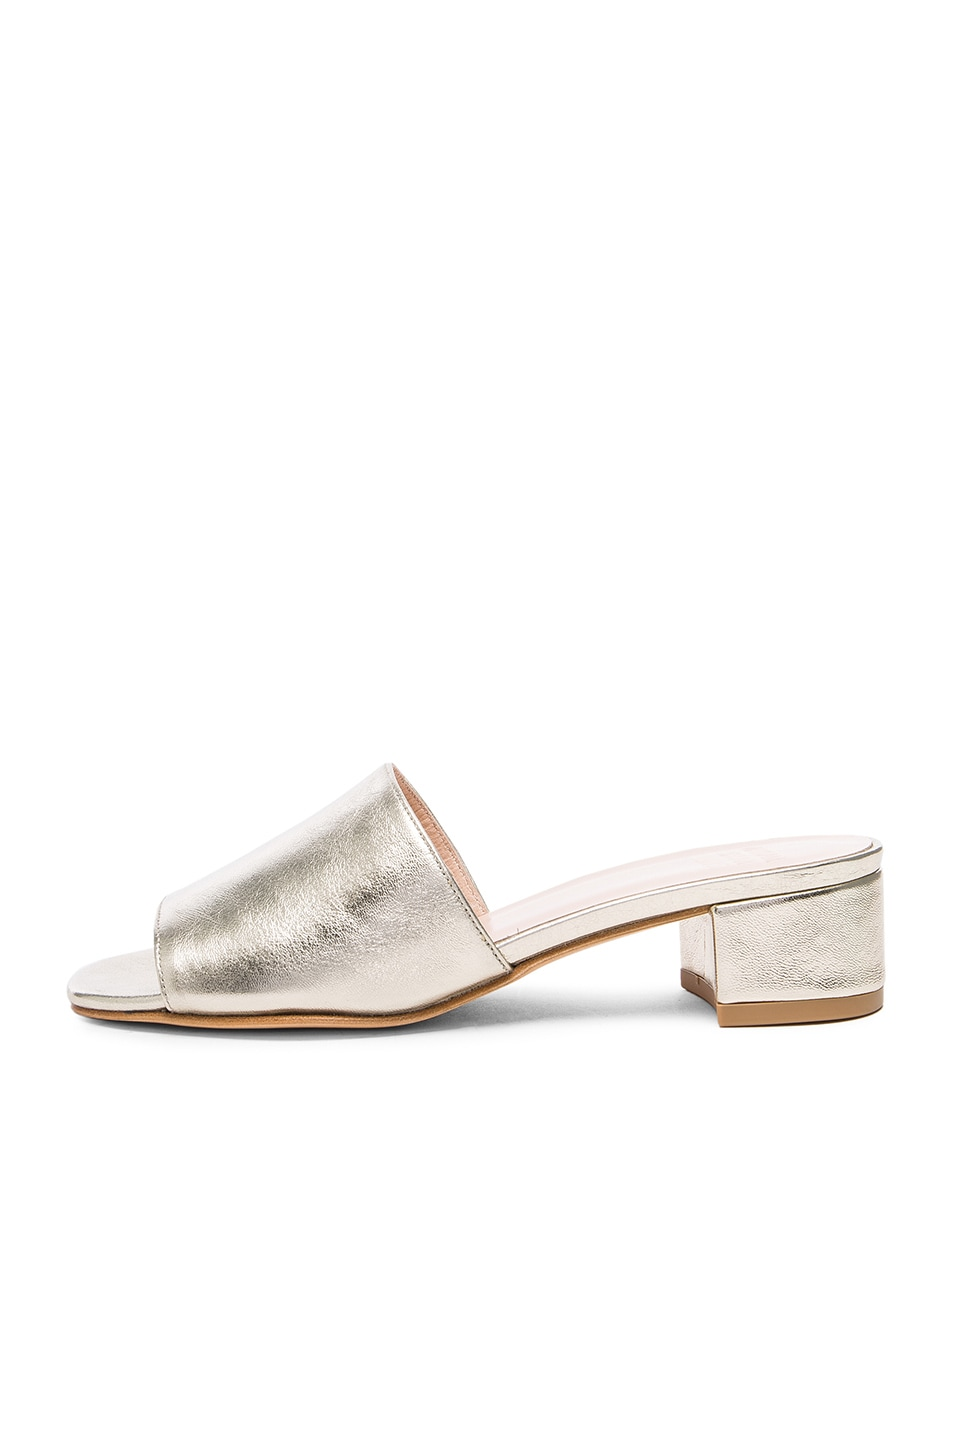 Image 5 of Maryam Nassir Zadeh Leather Sophie Slides in Prosecco Metallic